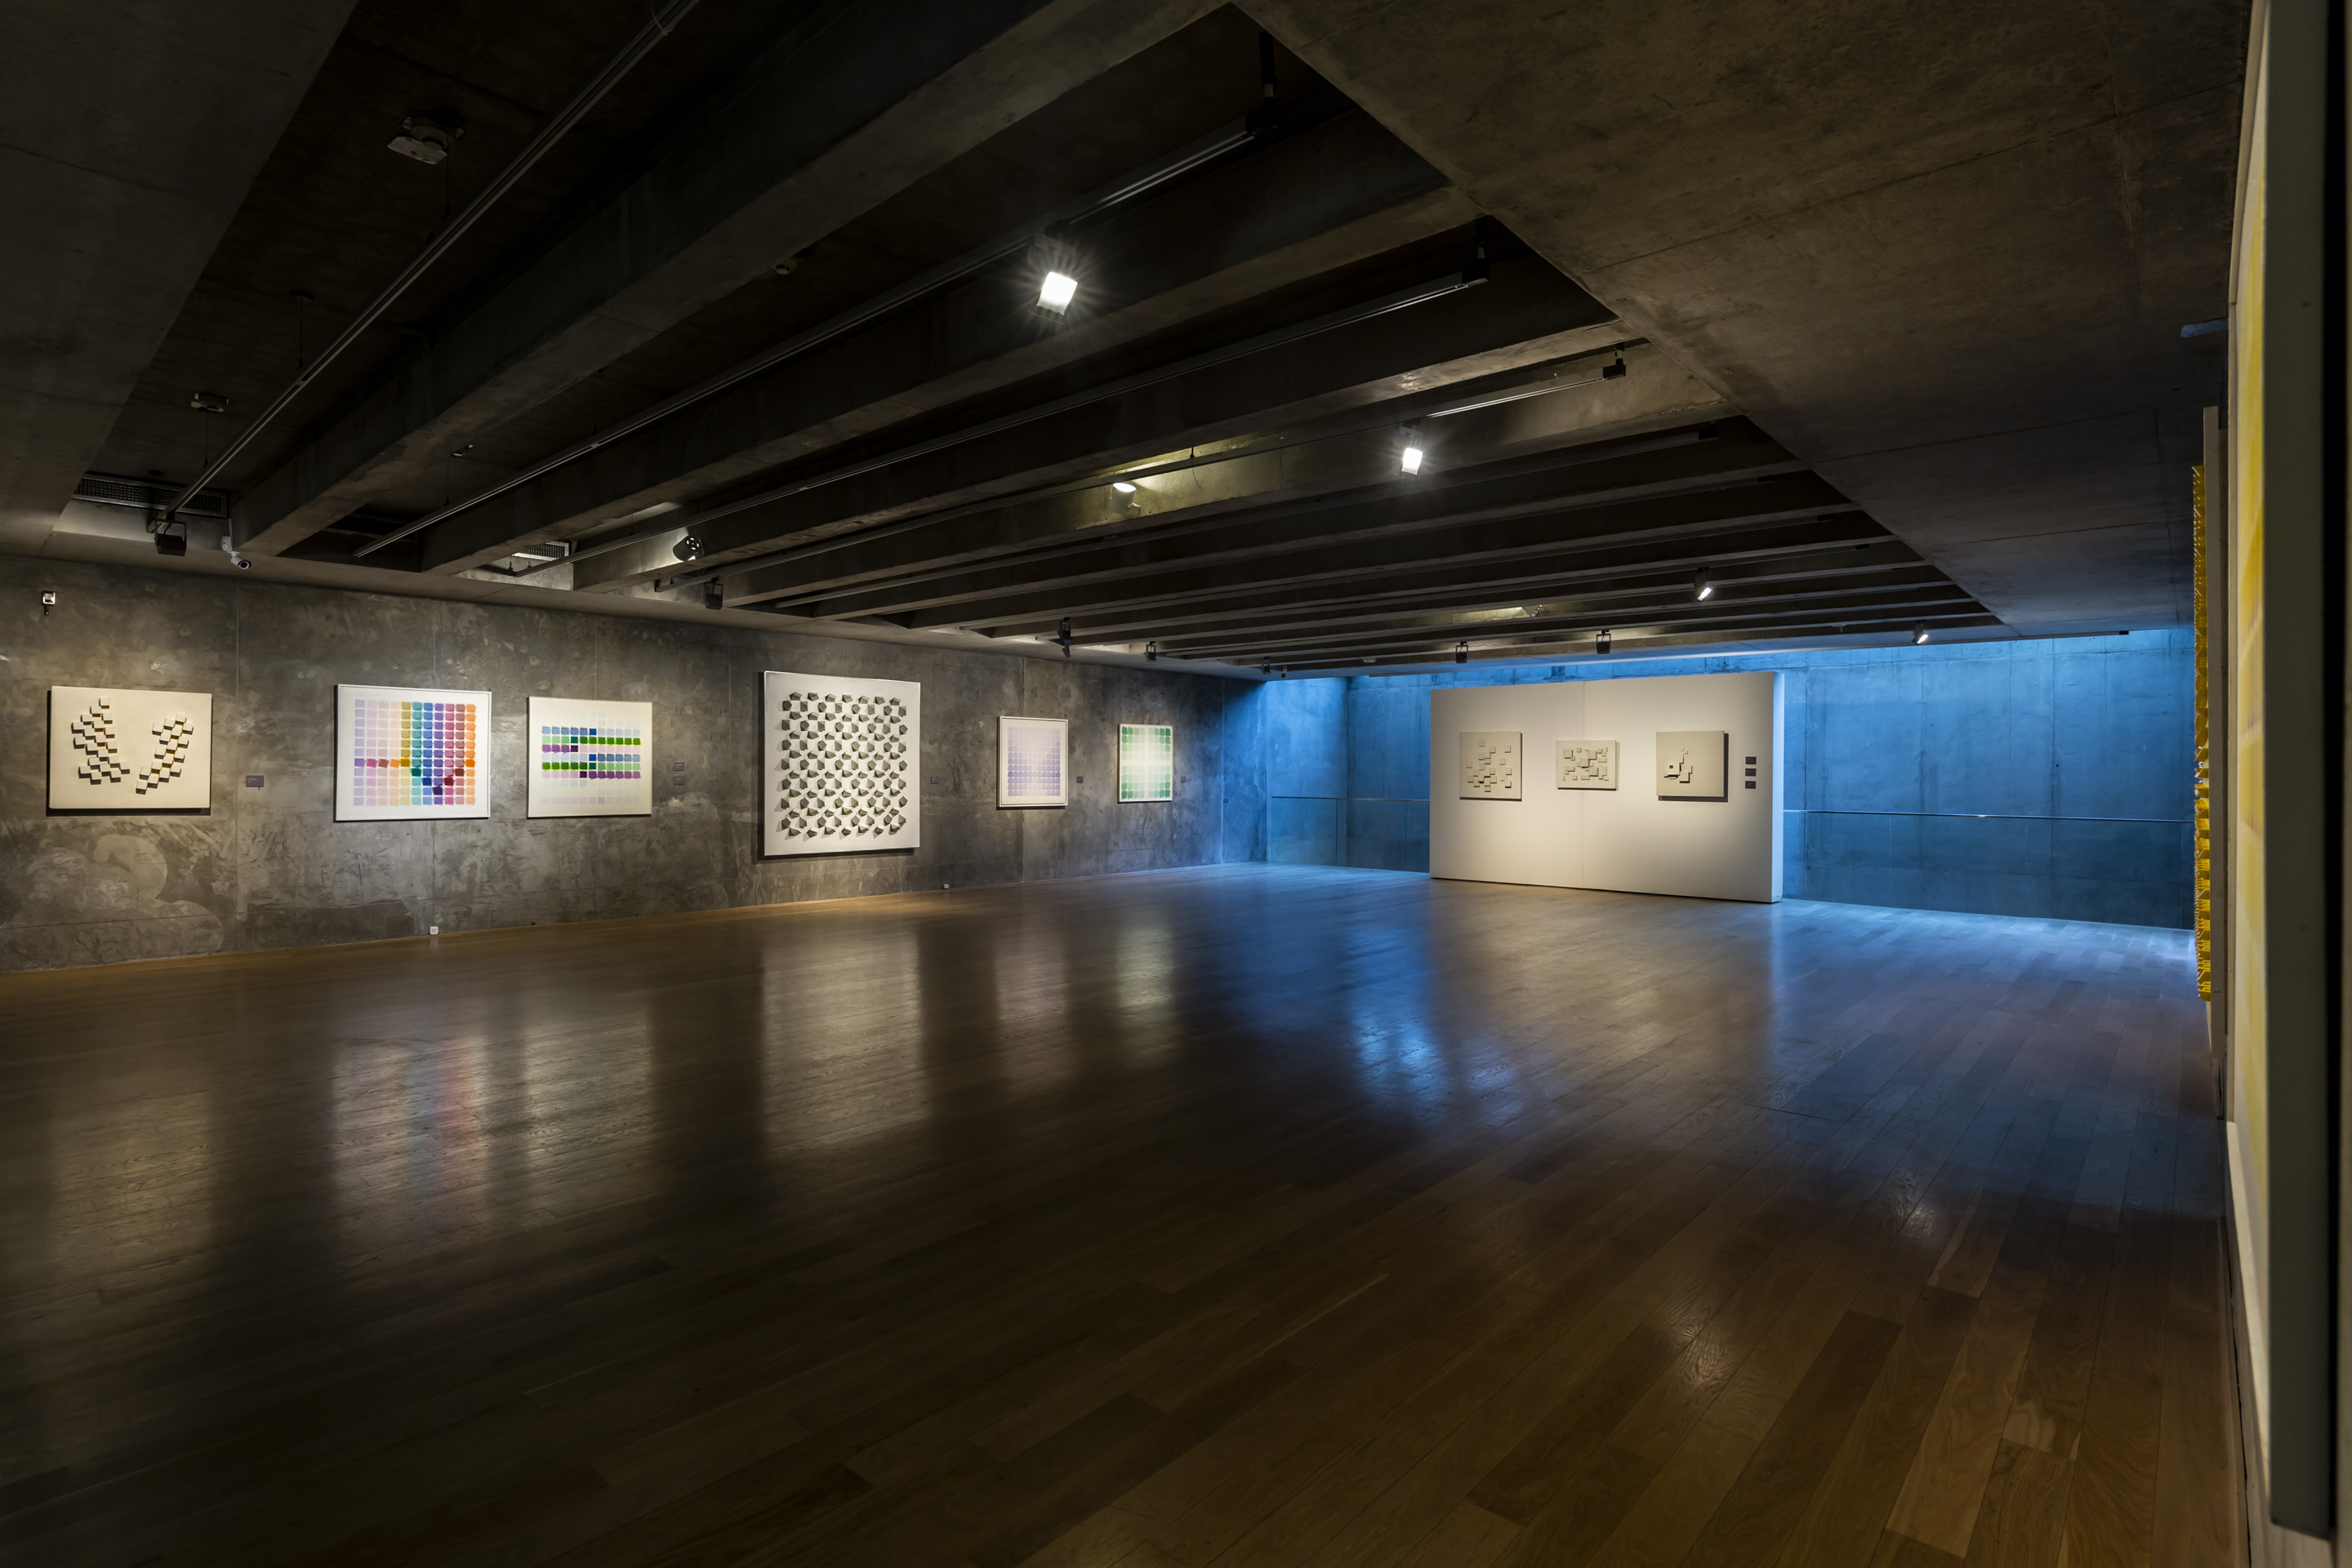 Works by Michael Tomasello and Manuel Espinosa. Photo: Bruto Studio. Courtesy of MACBA